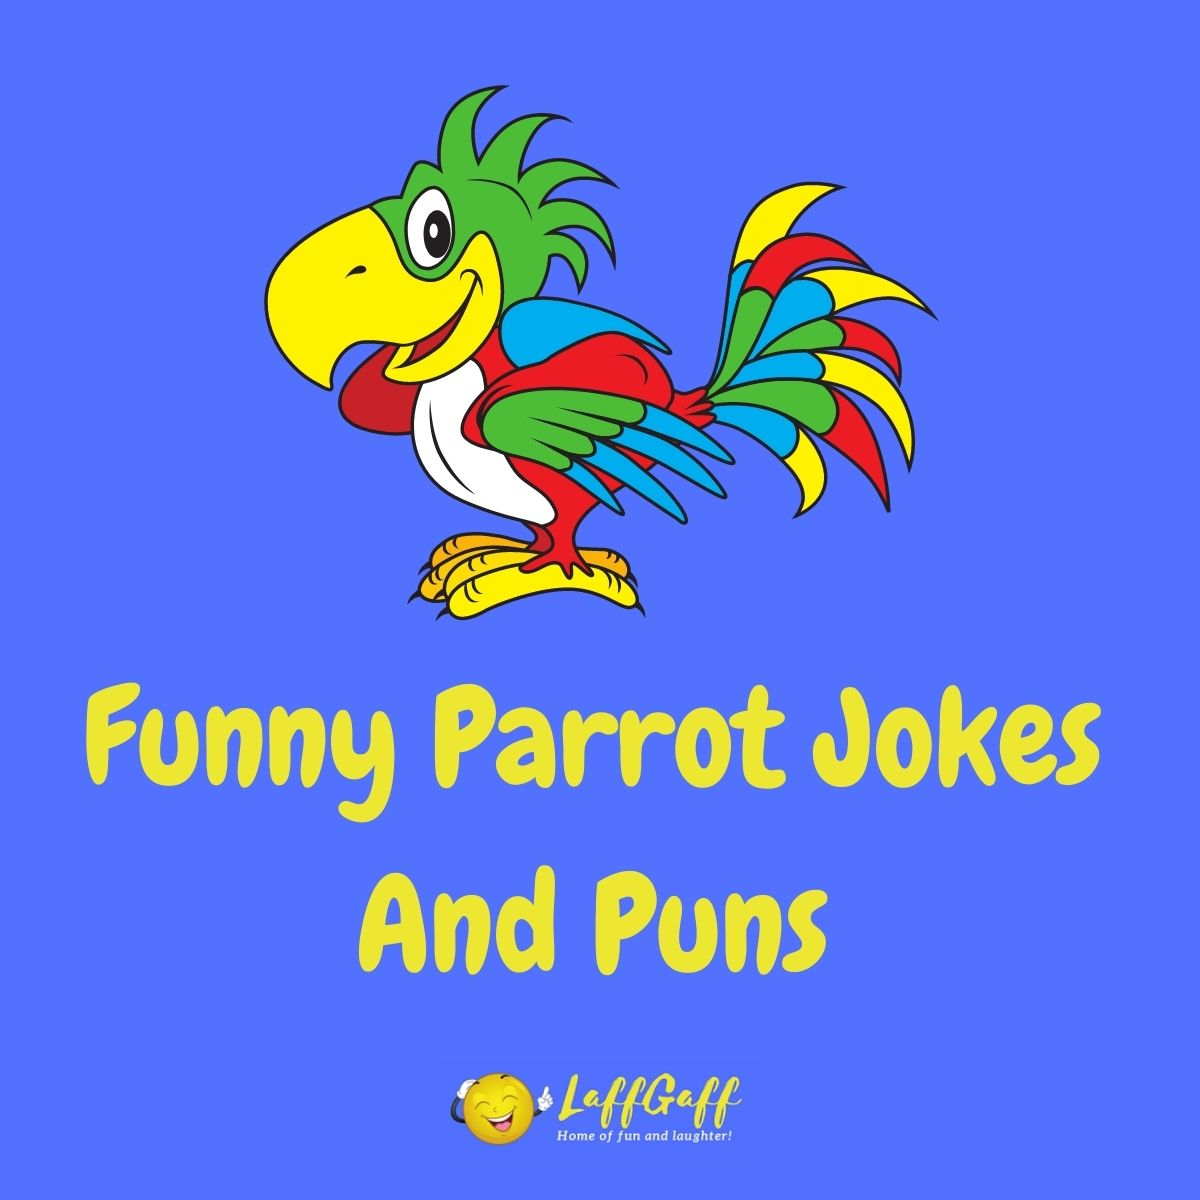 Featured image for a page of funny parrot jokes and puns.